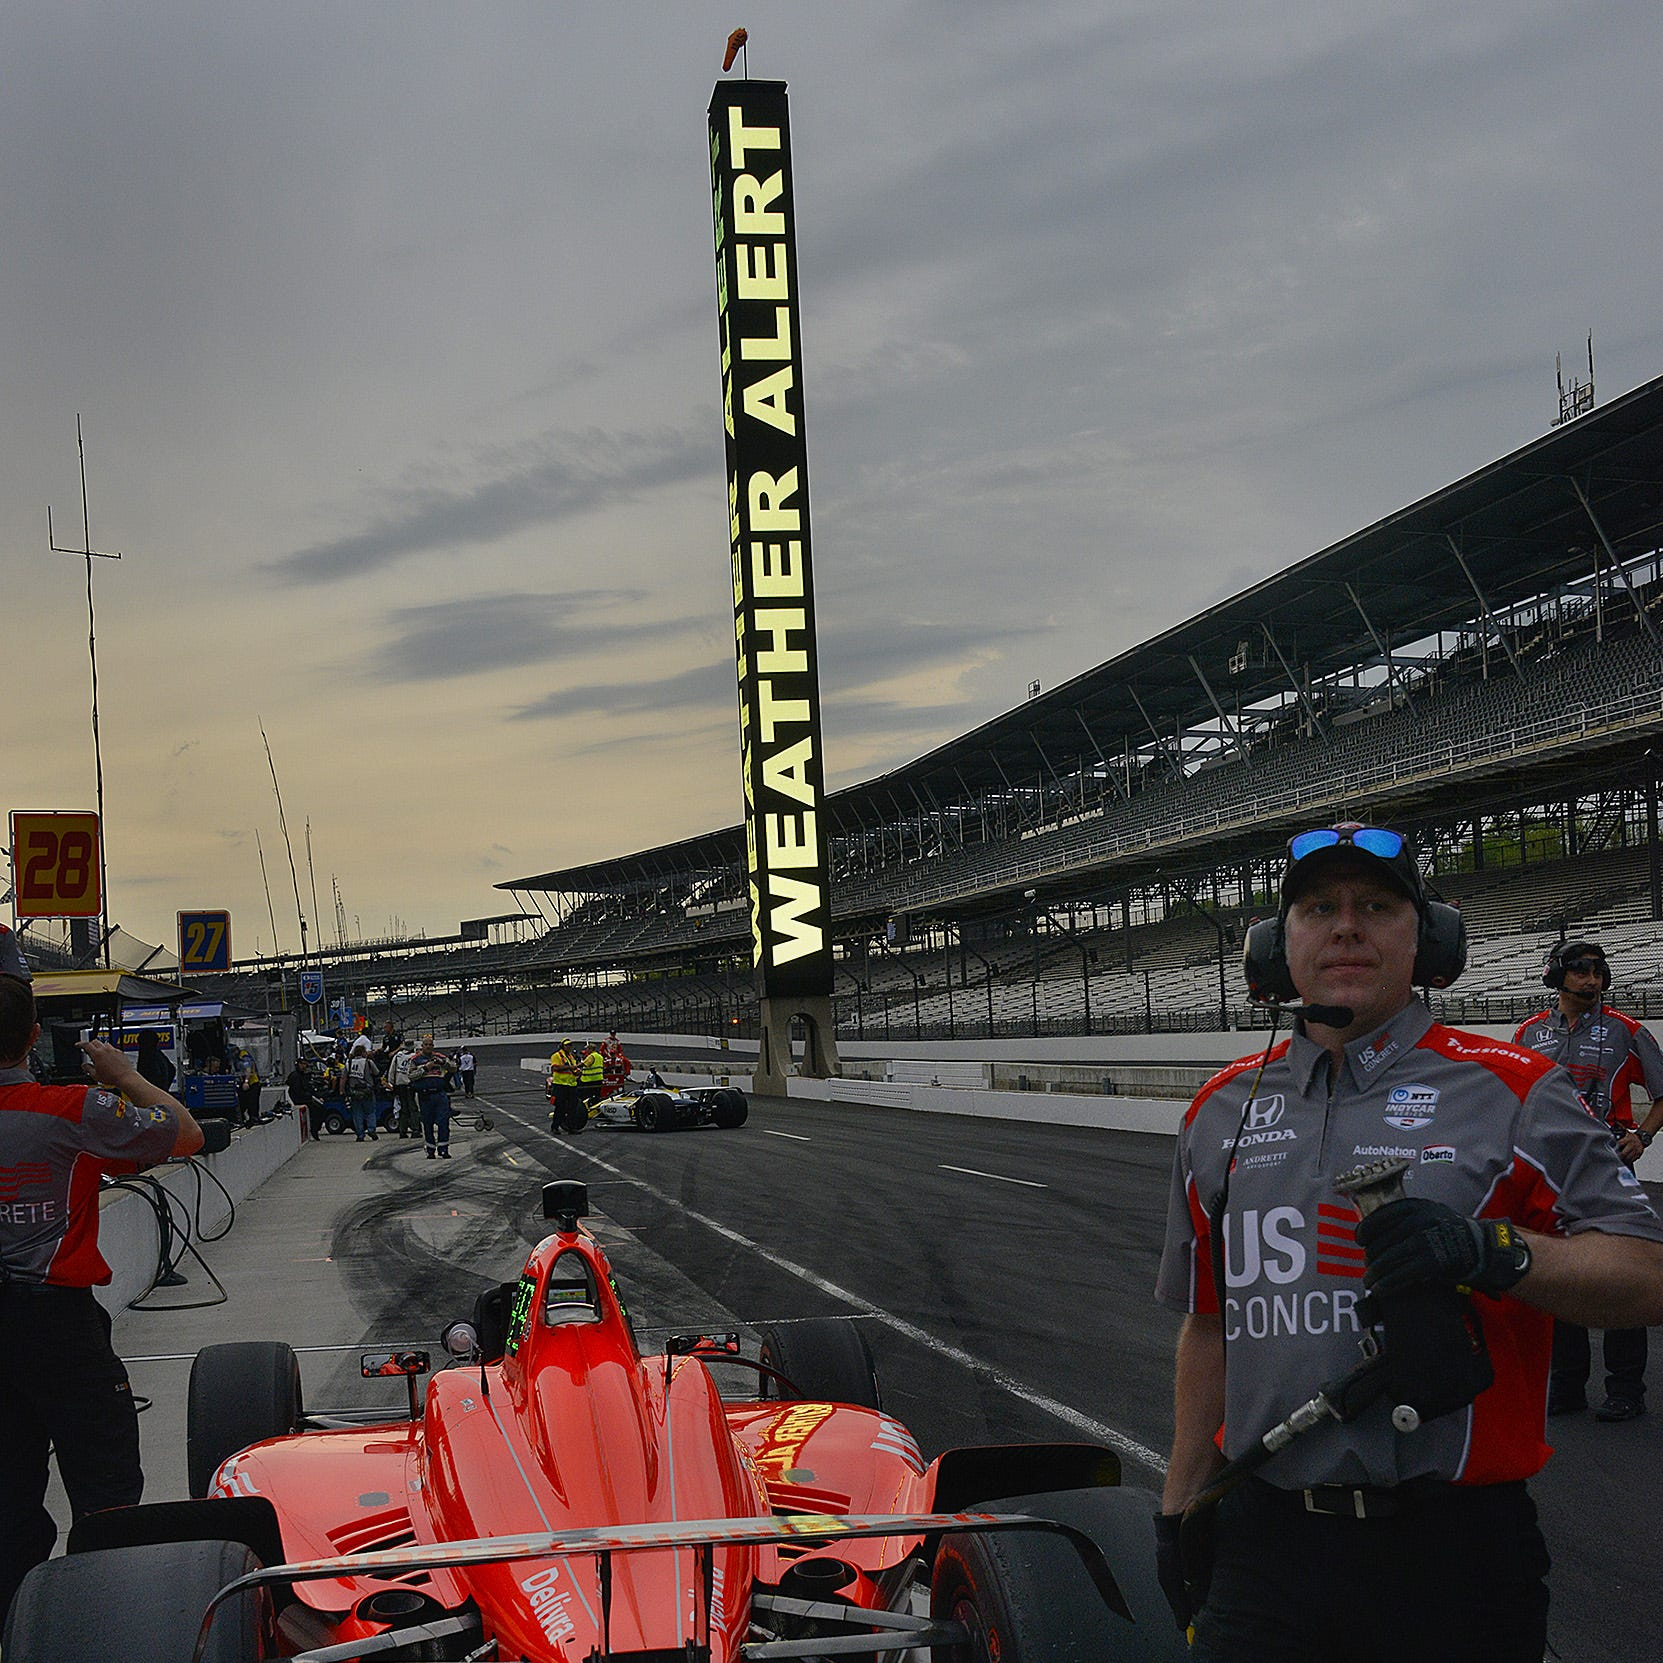 Indianapolis weather: Indy 500 qualifying will be hot, potentially stormy